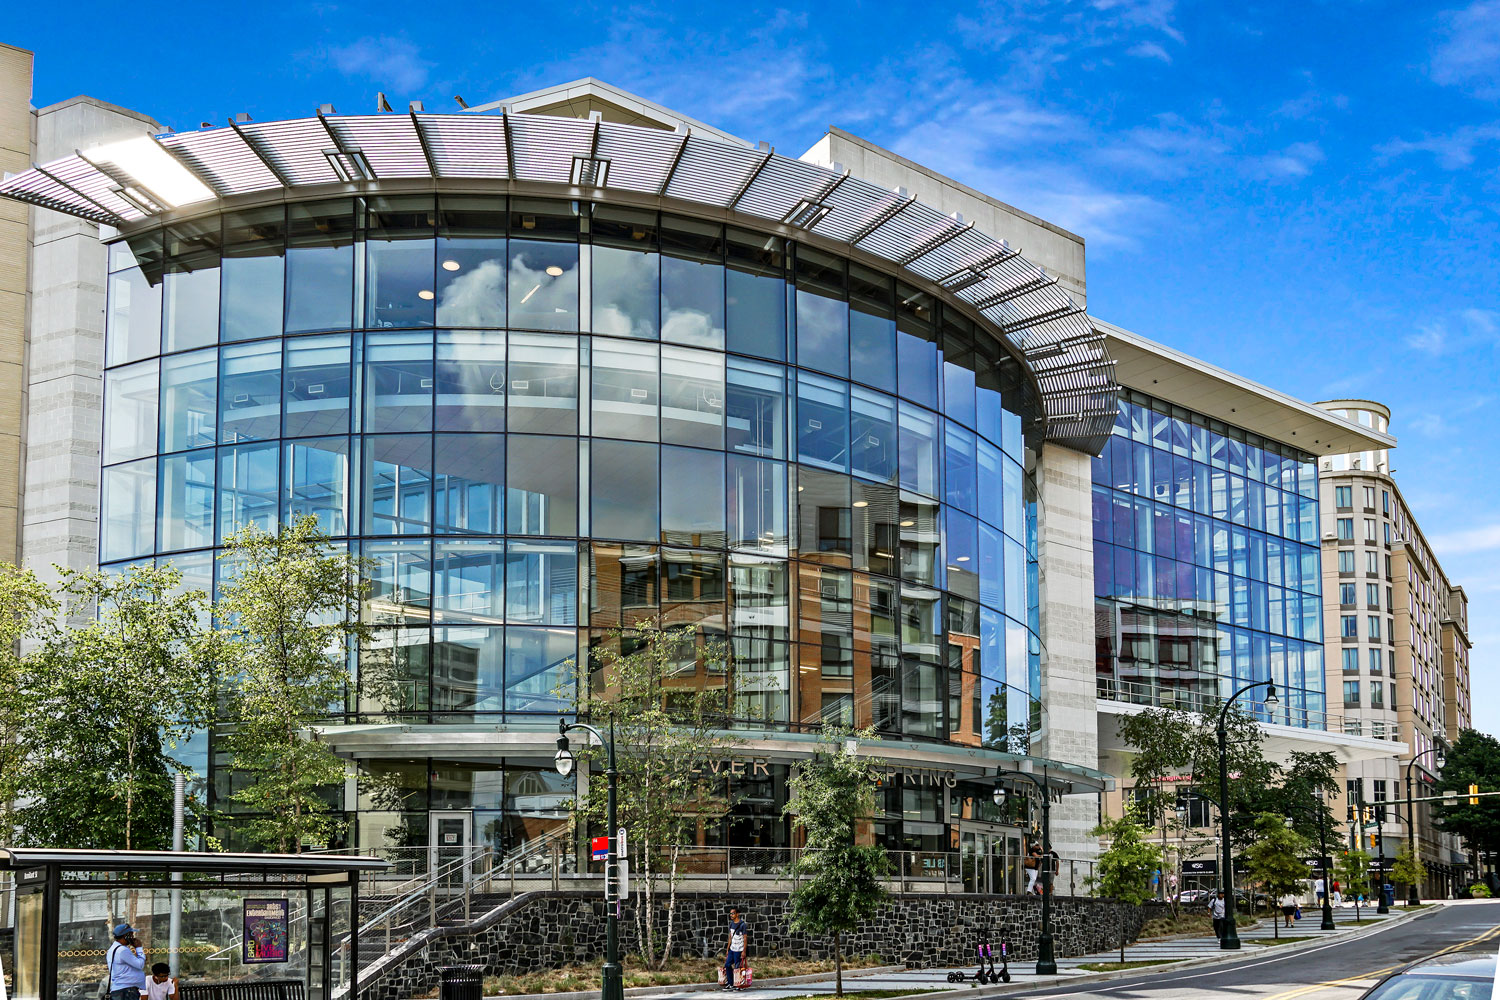 6 minutes to Silver Spring library in Downtown Silver Spring, MD